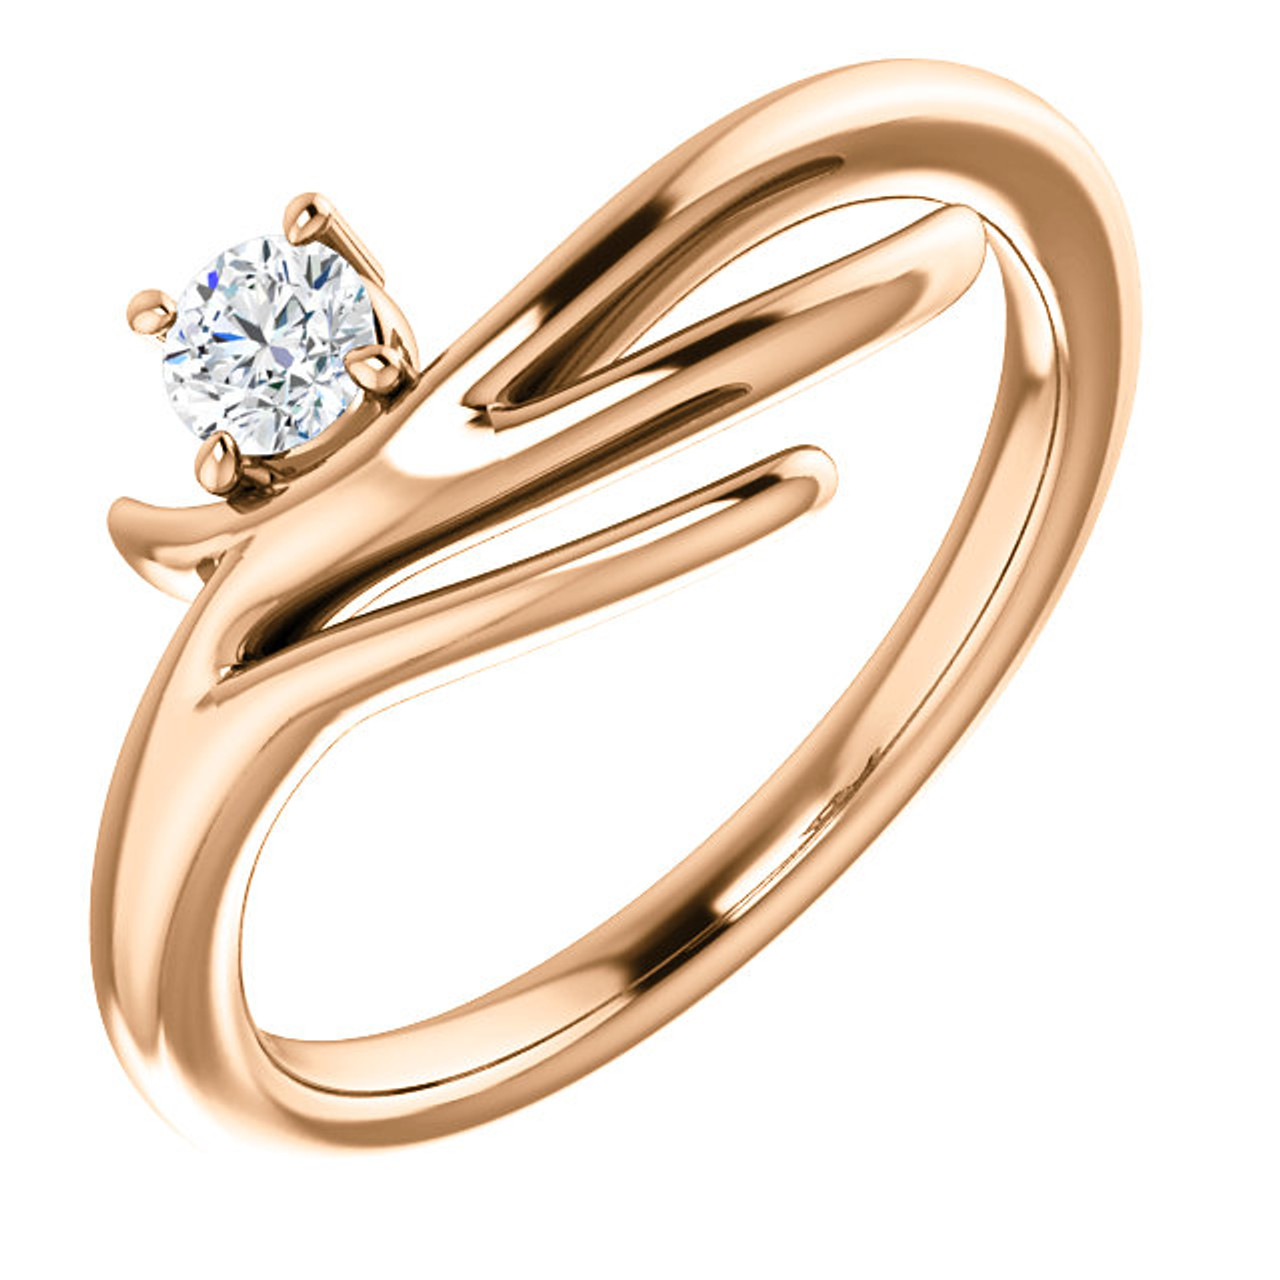 14kt Gold Organic FreeForm Solitaire Ring Wedding Bands Co